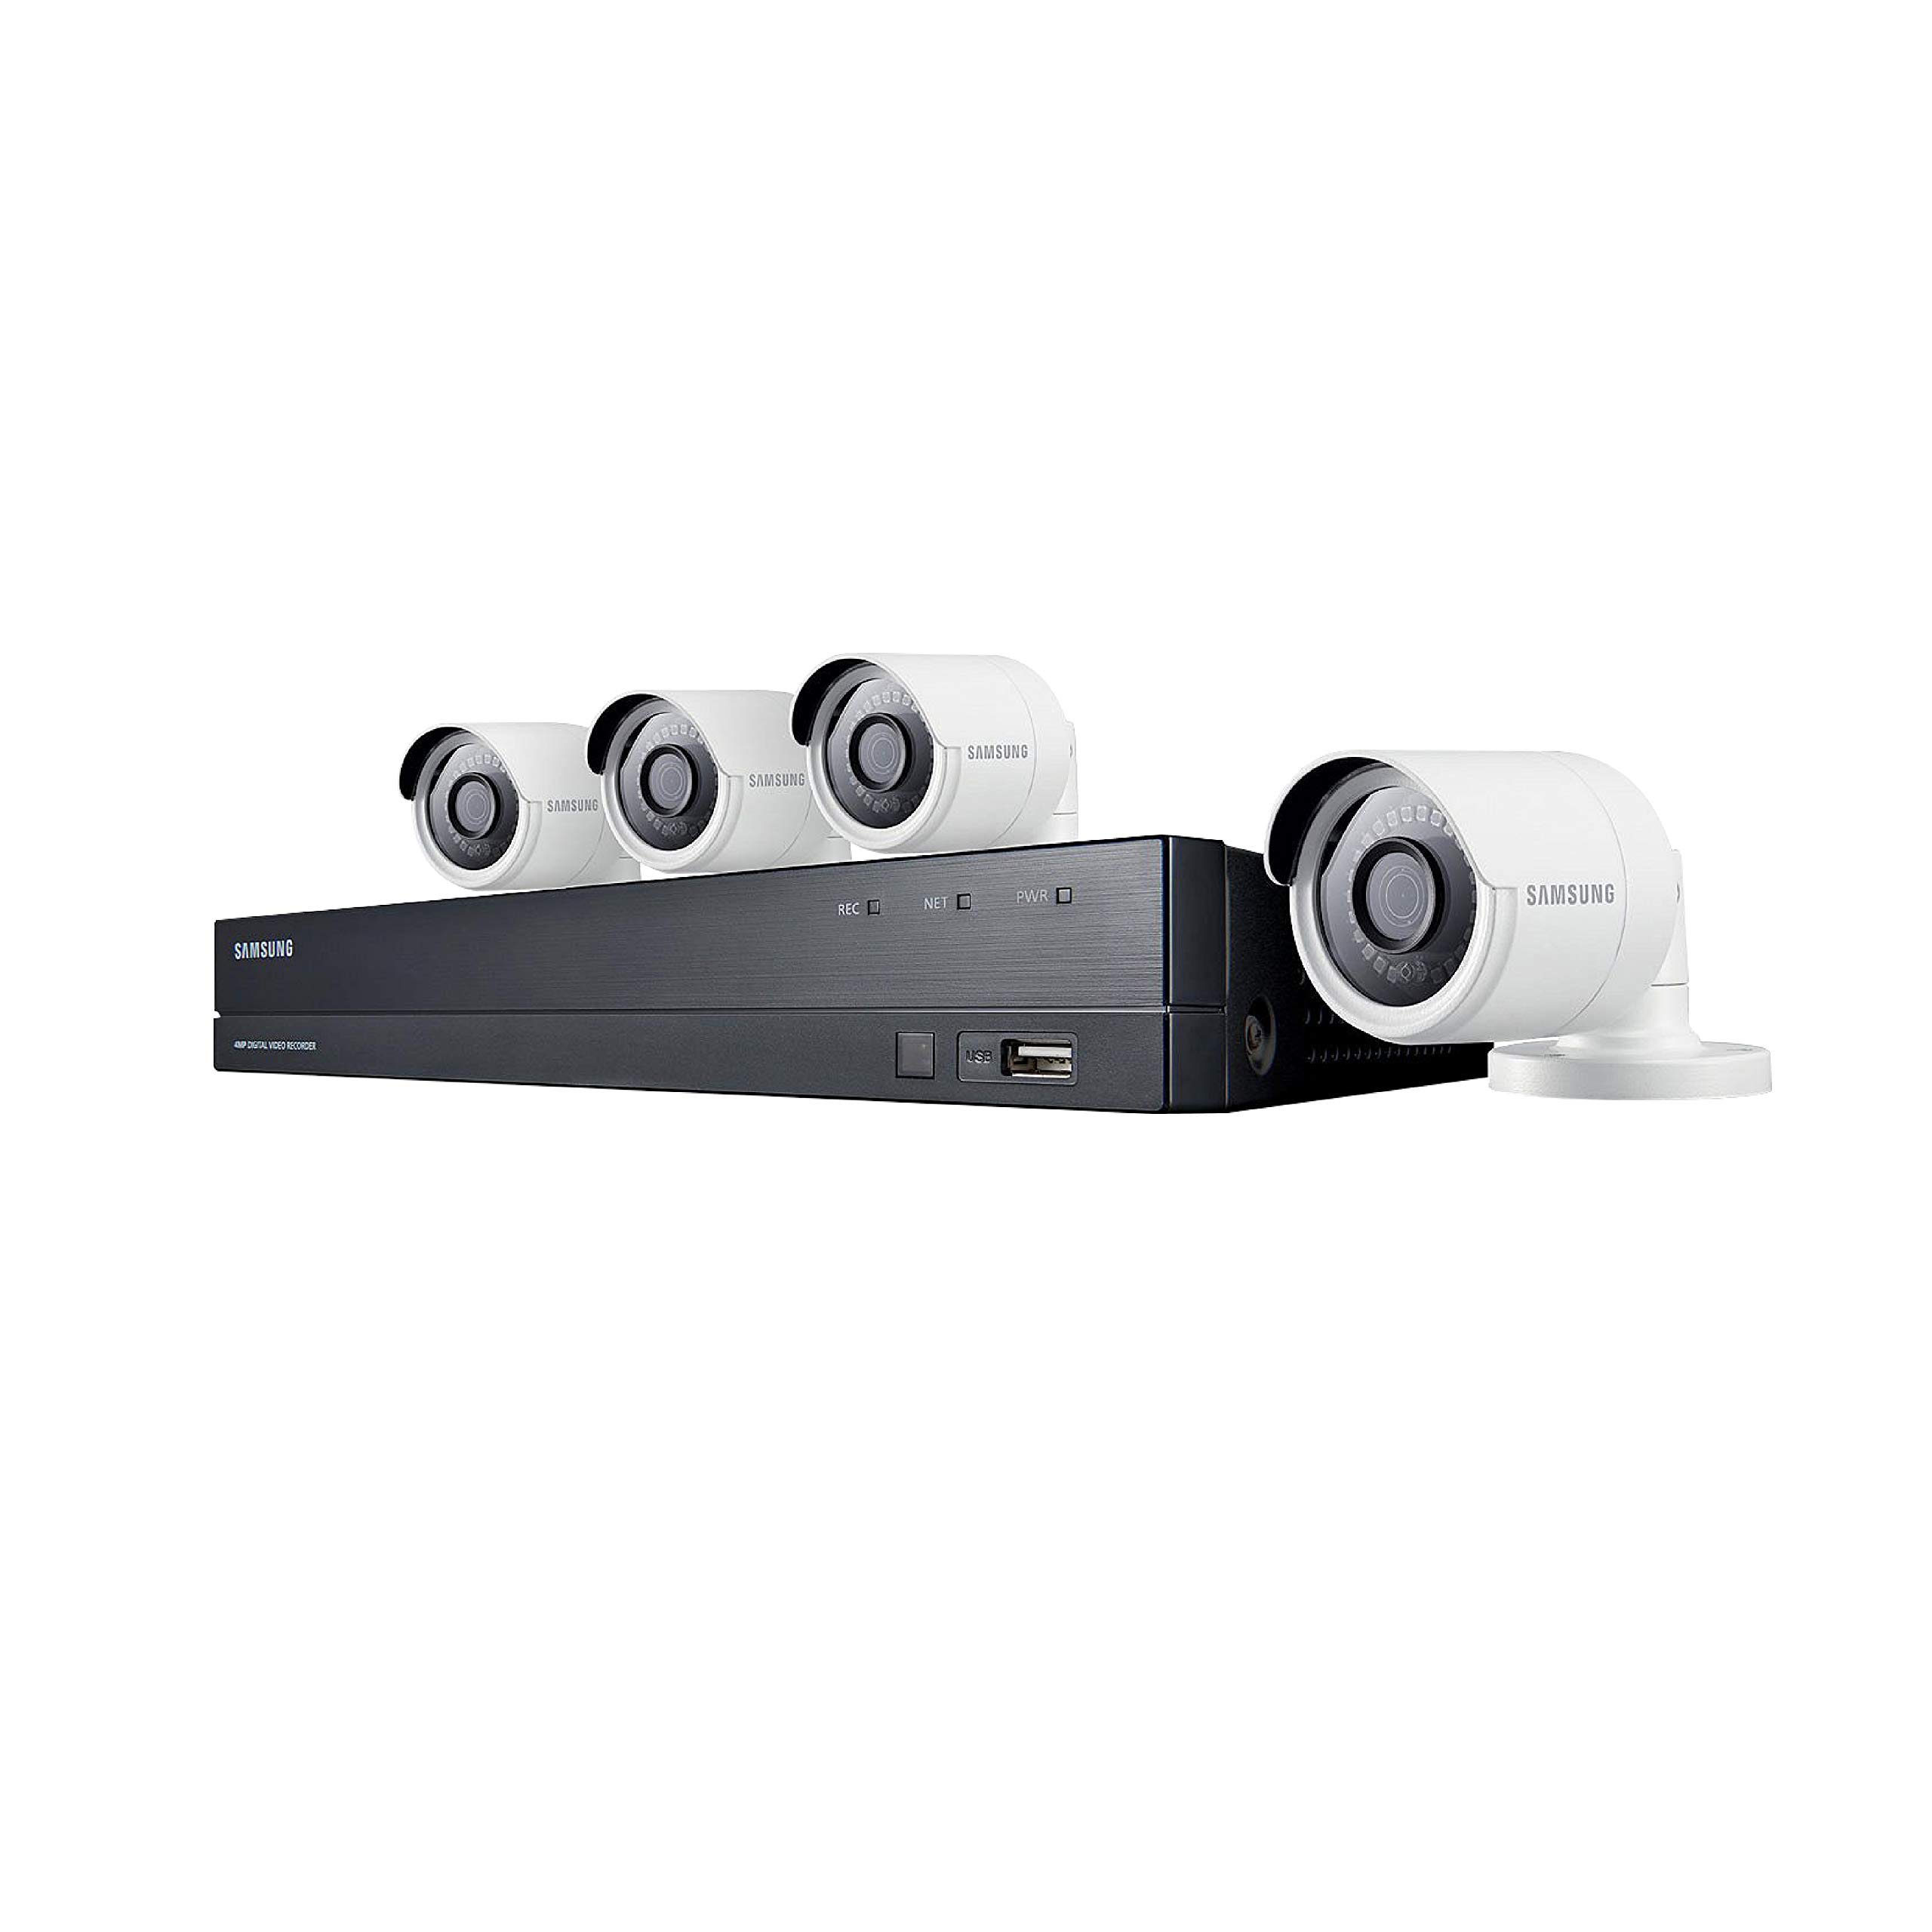 Samsung Wisenet SDH-B84040BF 8 Channel 4 MP Super HD DVR Video Security System 4 Weather Resistant Bullet Camera (SDC-89440BC) with 1TB Hard Drive by Samsung